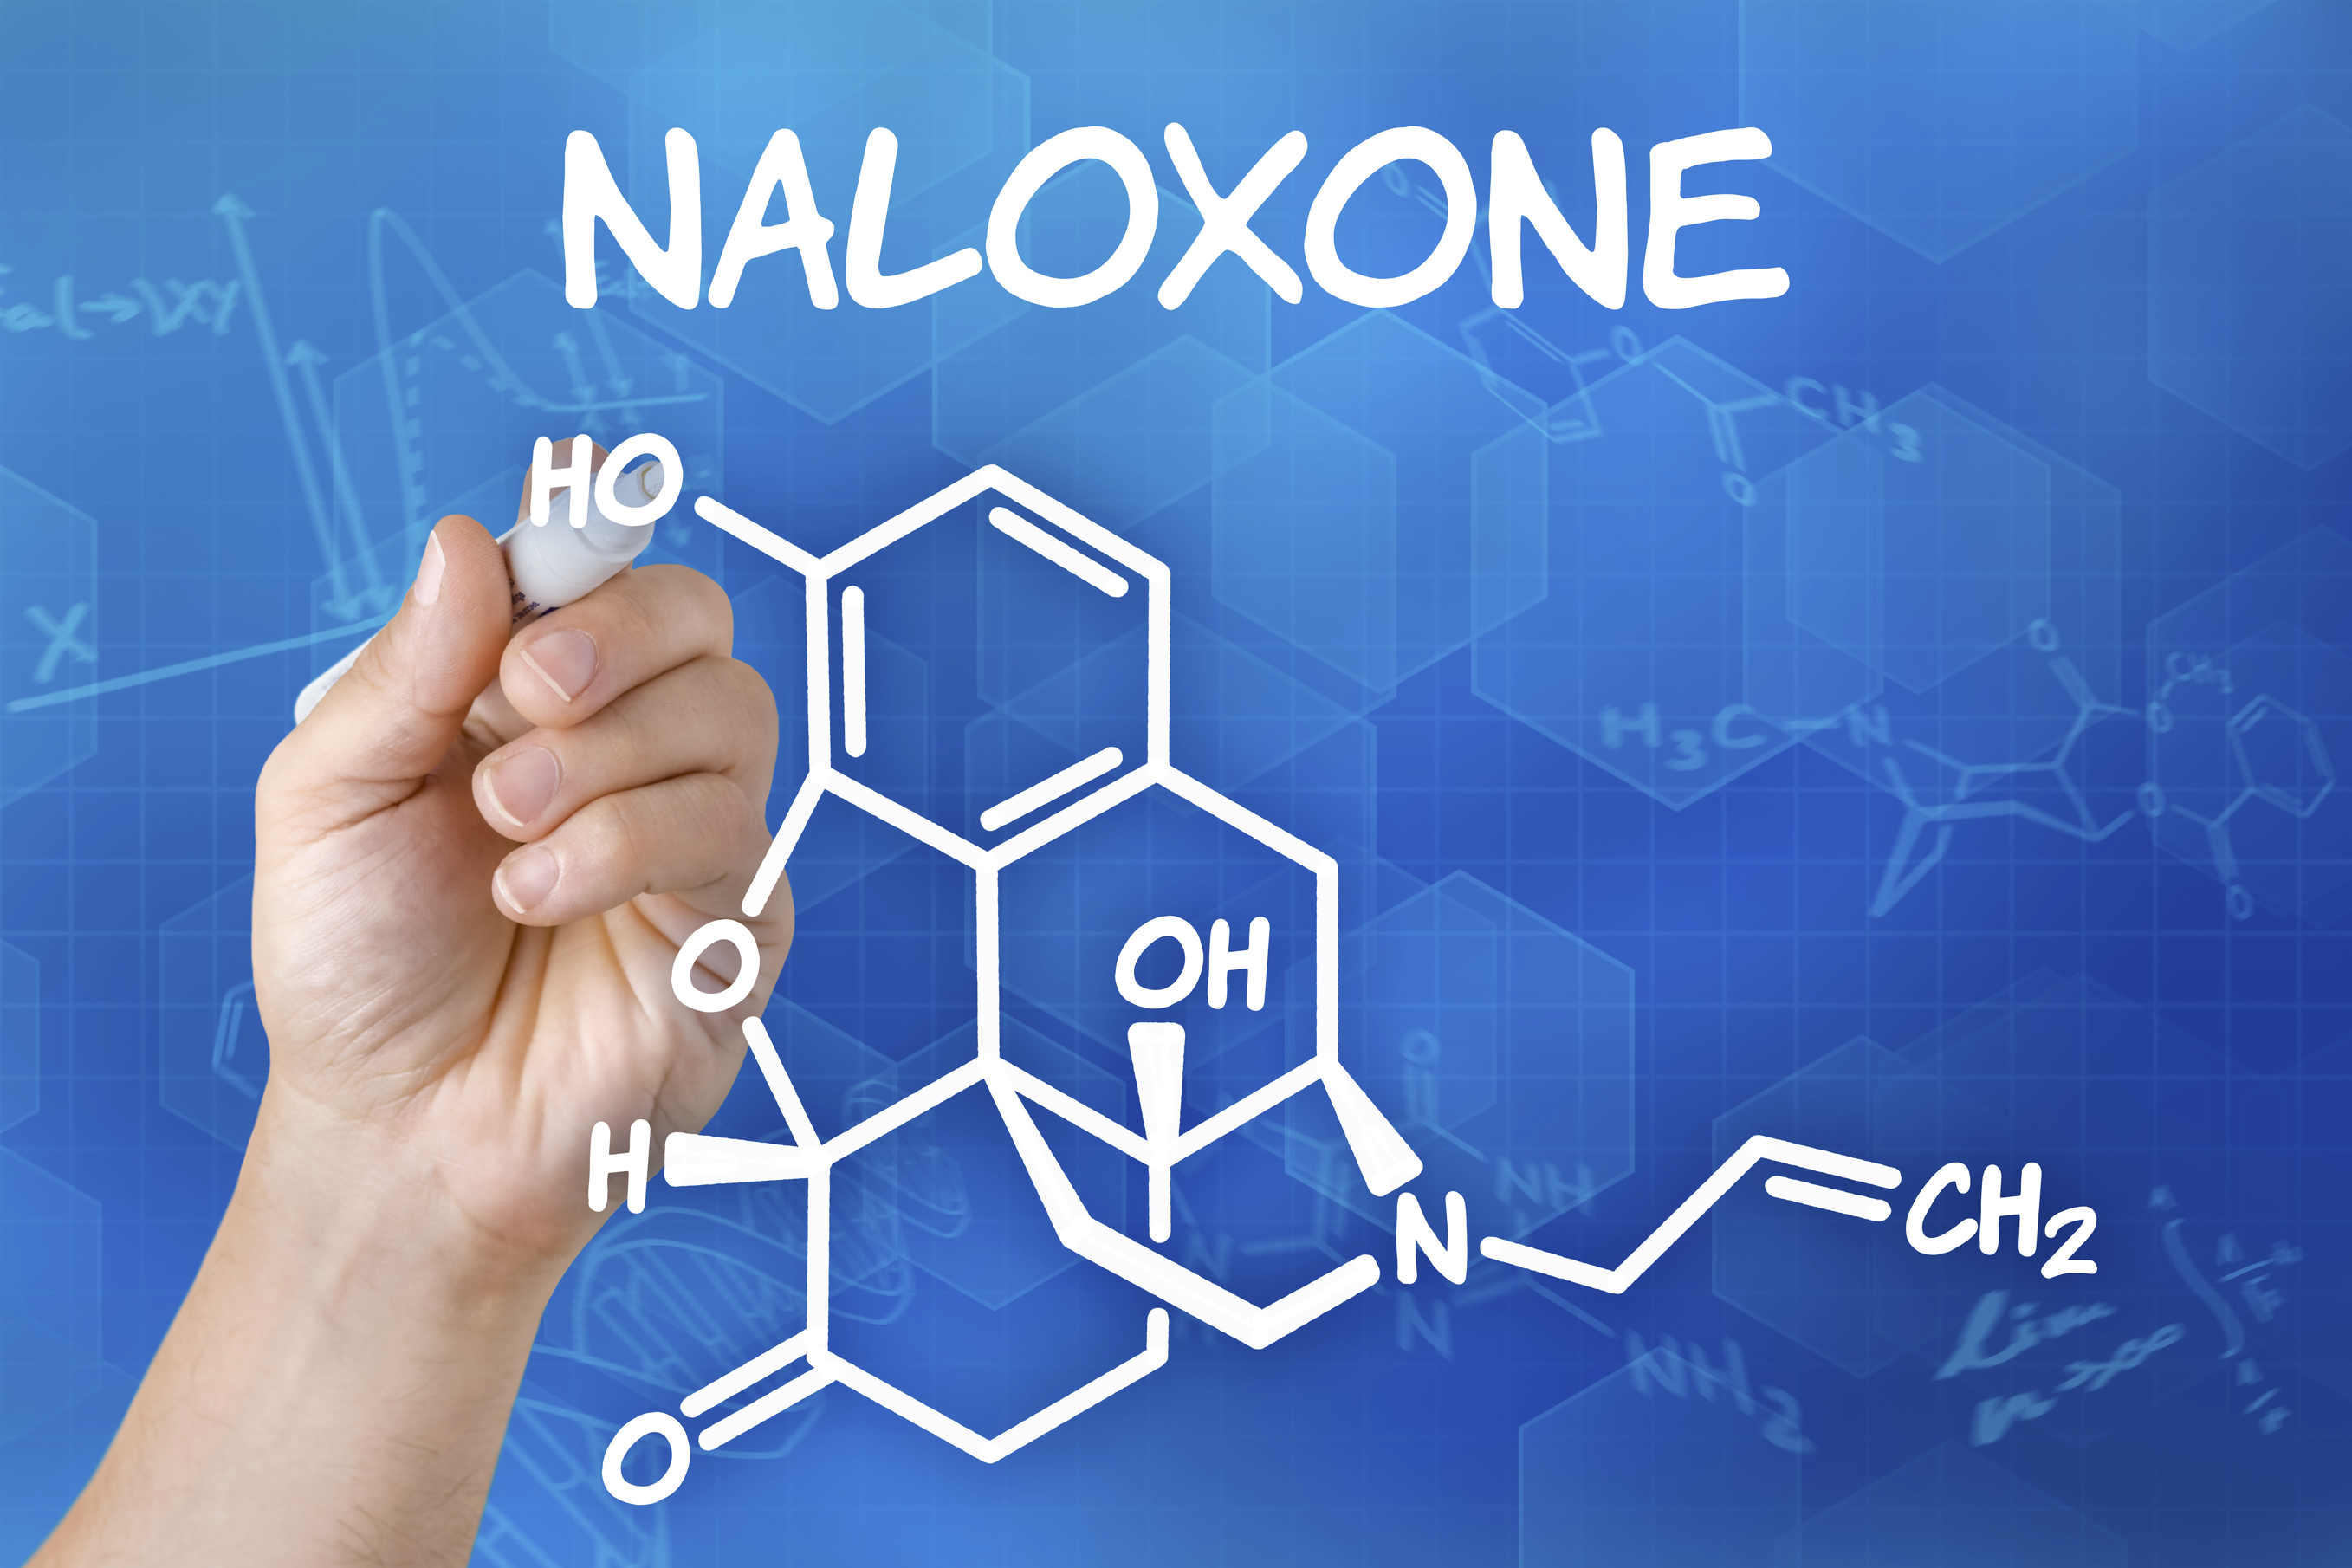 10 Questions About Naloxone Answered